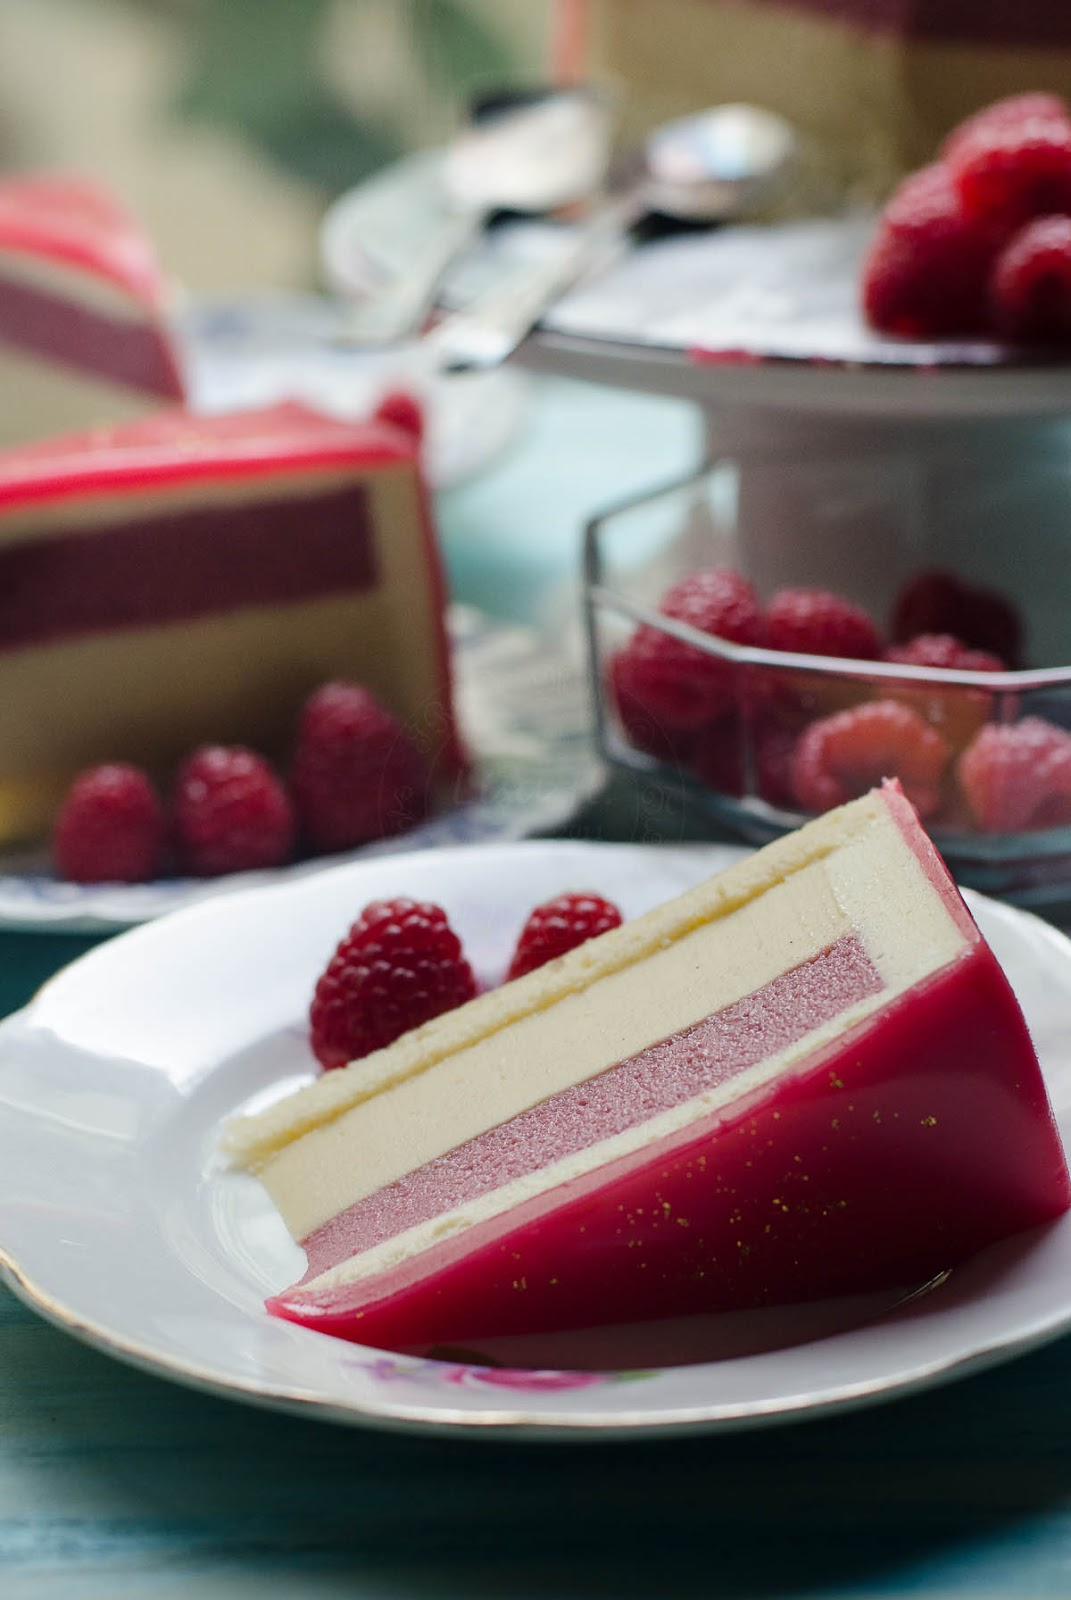 Slice of Honey, Raspberry and White Chocolate Bavarois entremet image photo